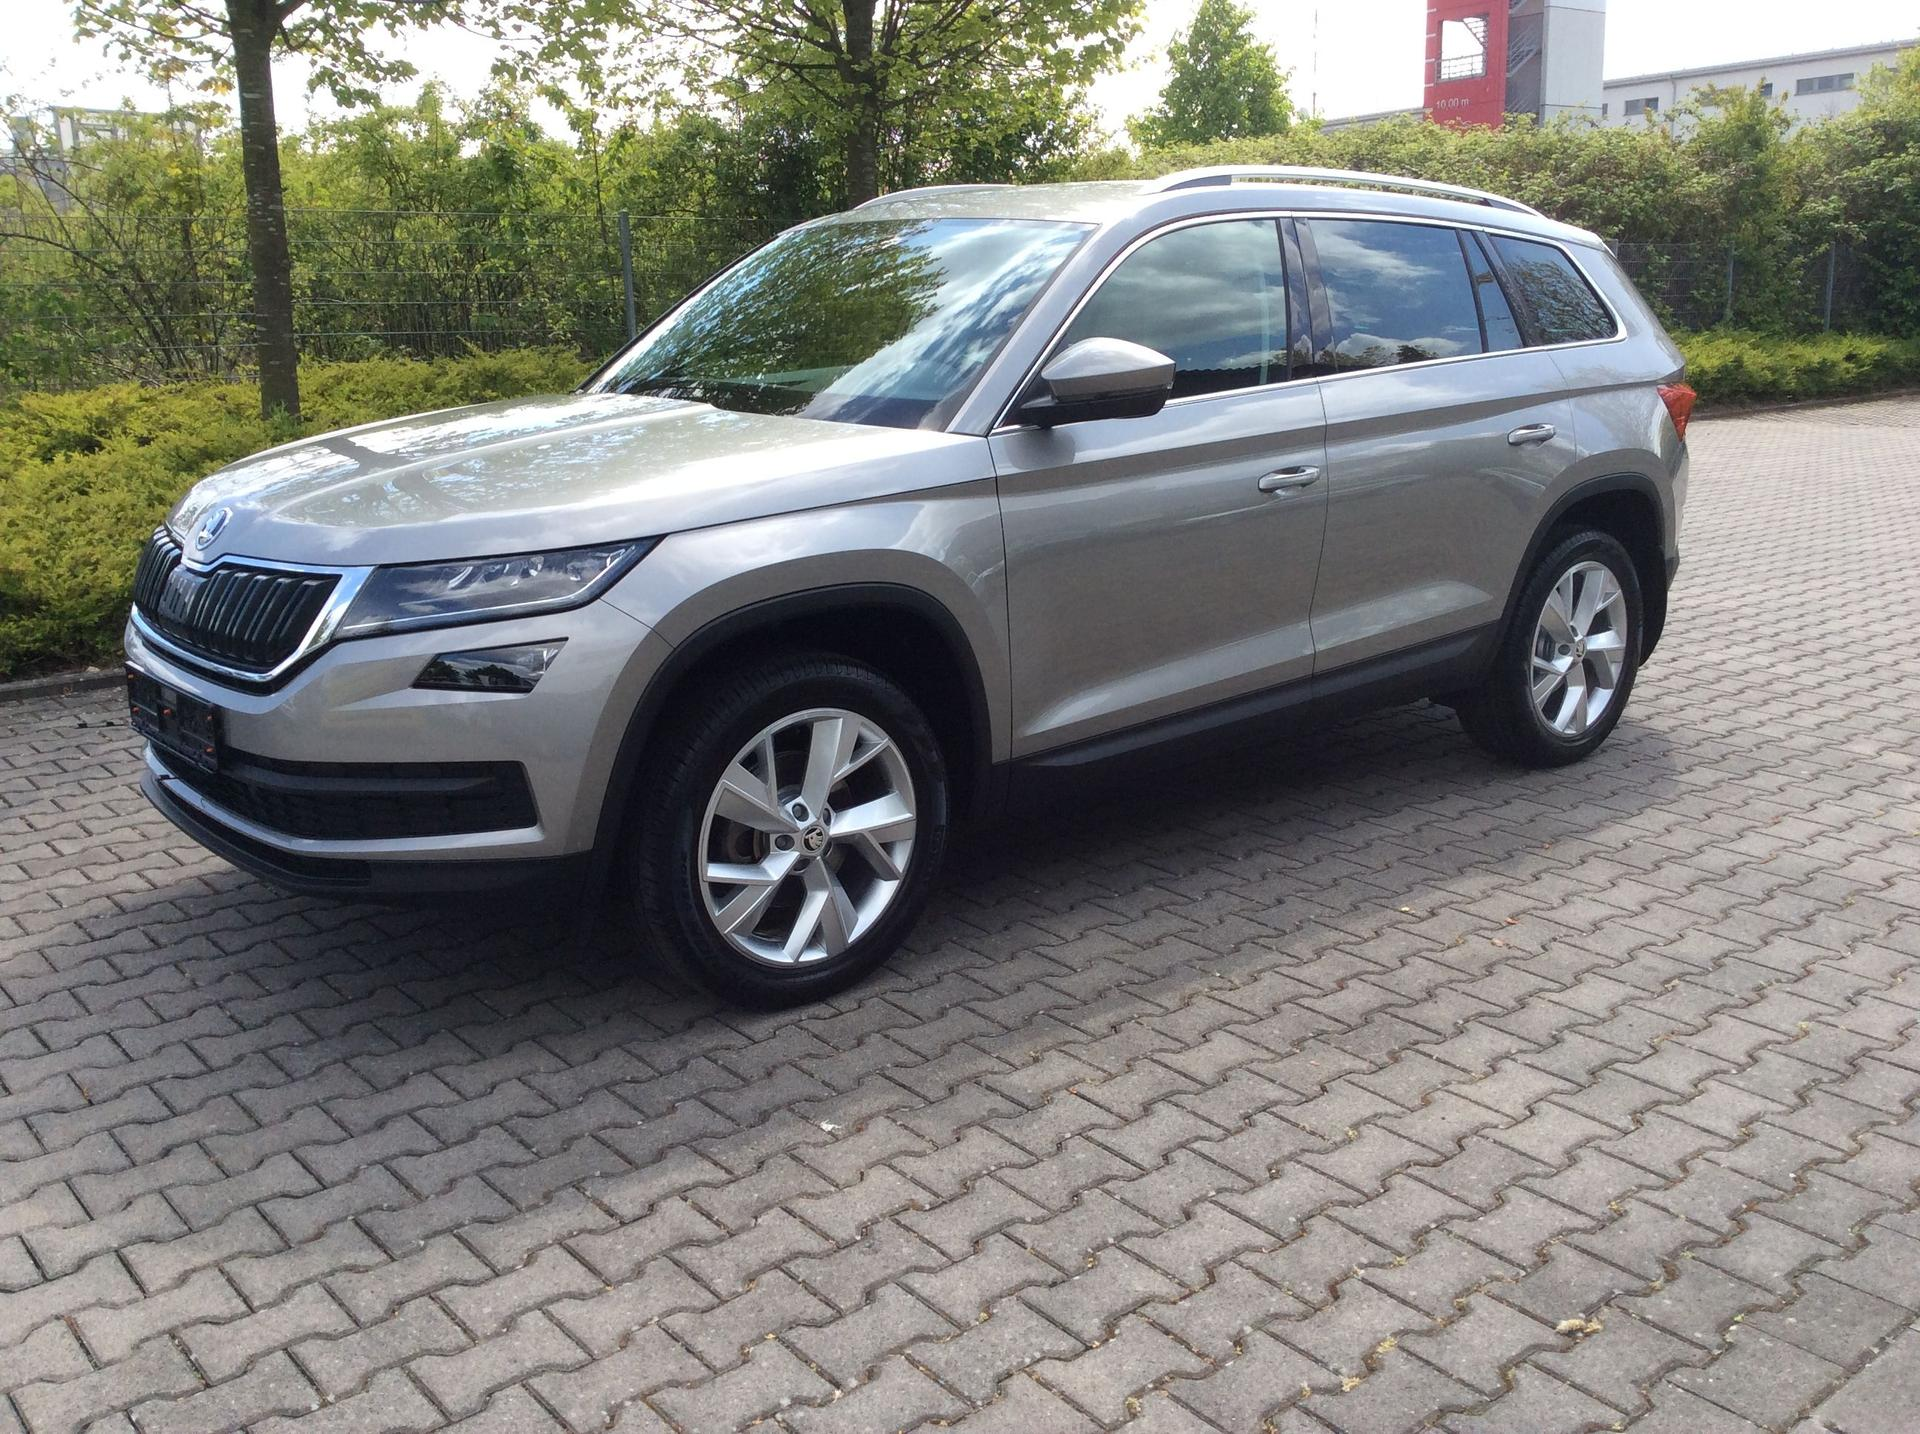 skoda kodiaq style 1 4tsi act 110kw 150ps dsg 6 gang neuwagen vertrieb rhein main. Black Bedroom Furniture Sets. Home Design Ideas